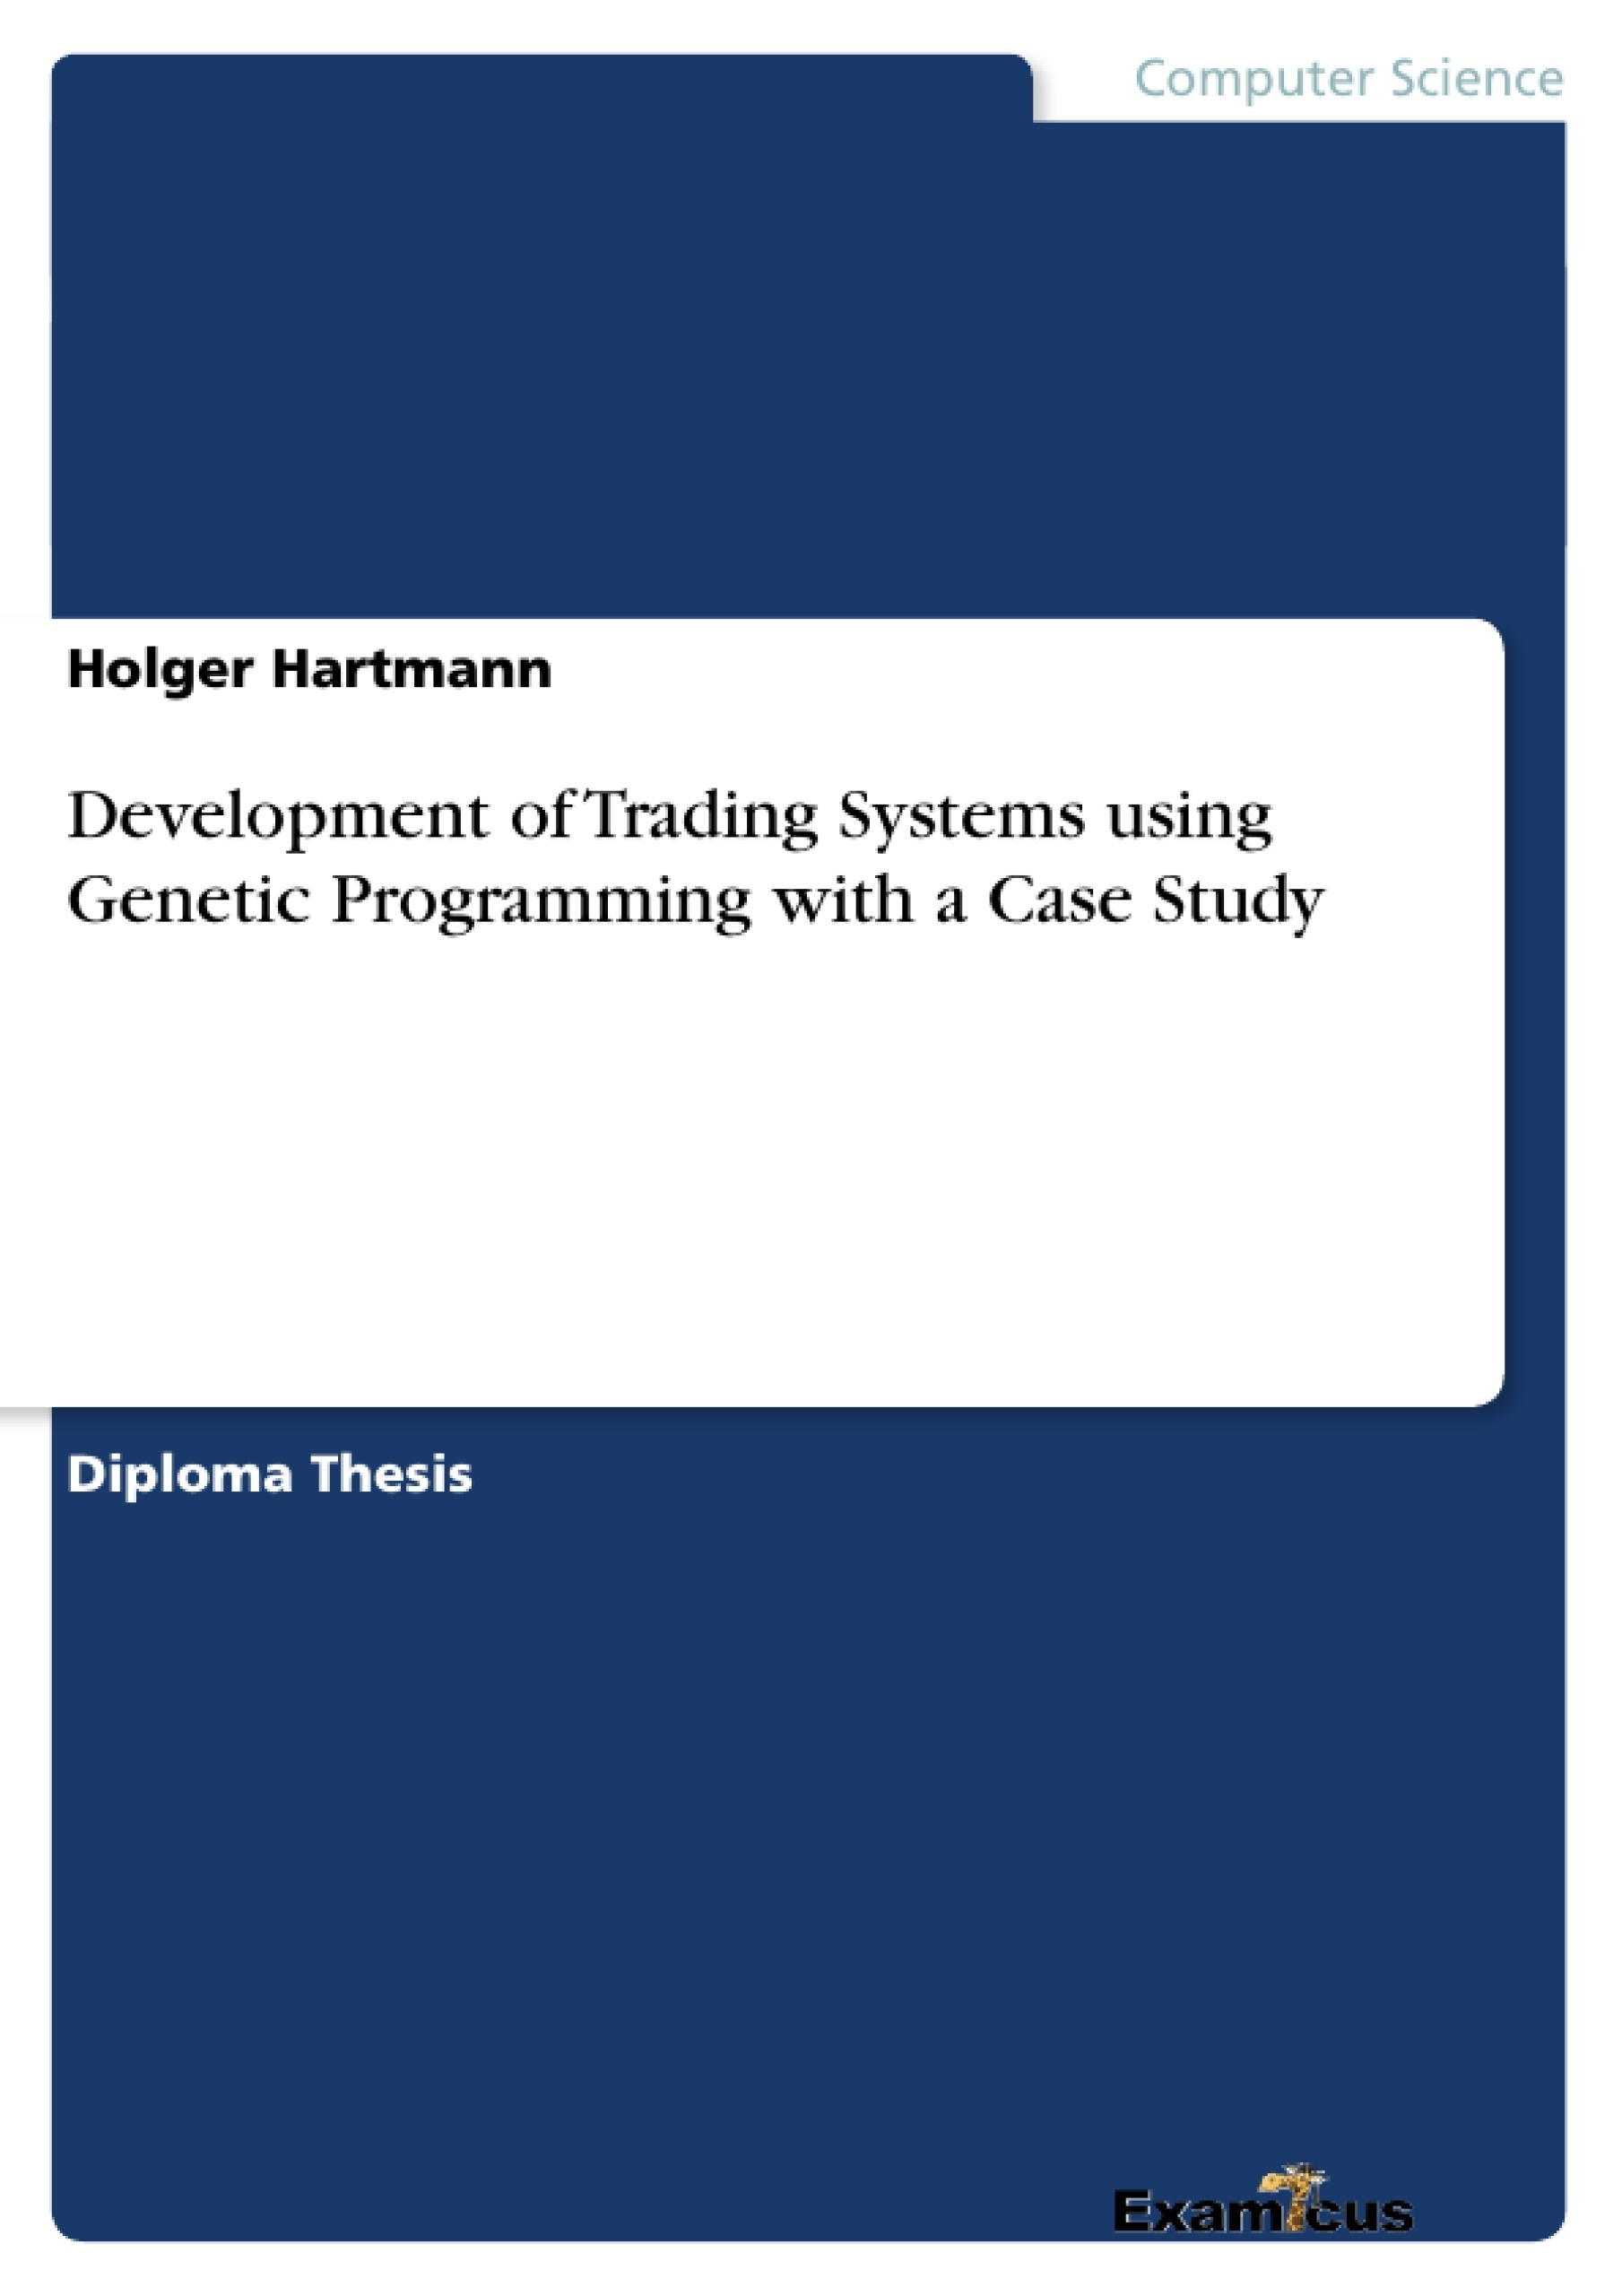 Title: Development of Trading Systems using Genetic Programming with a Case Study